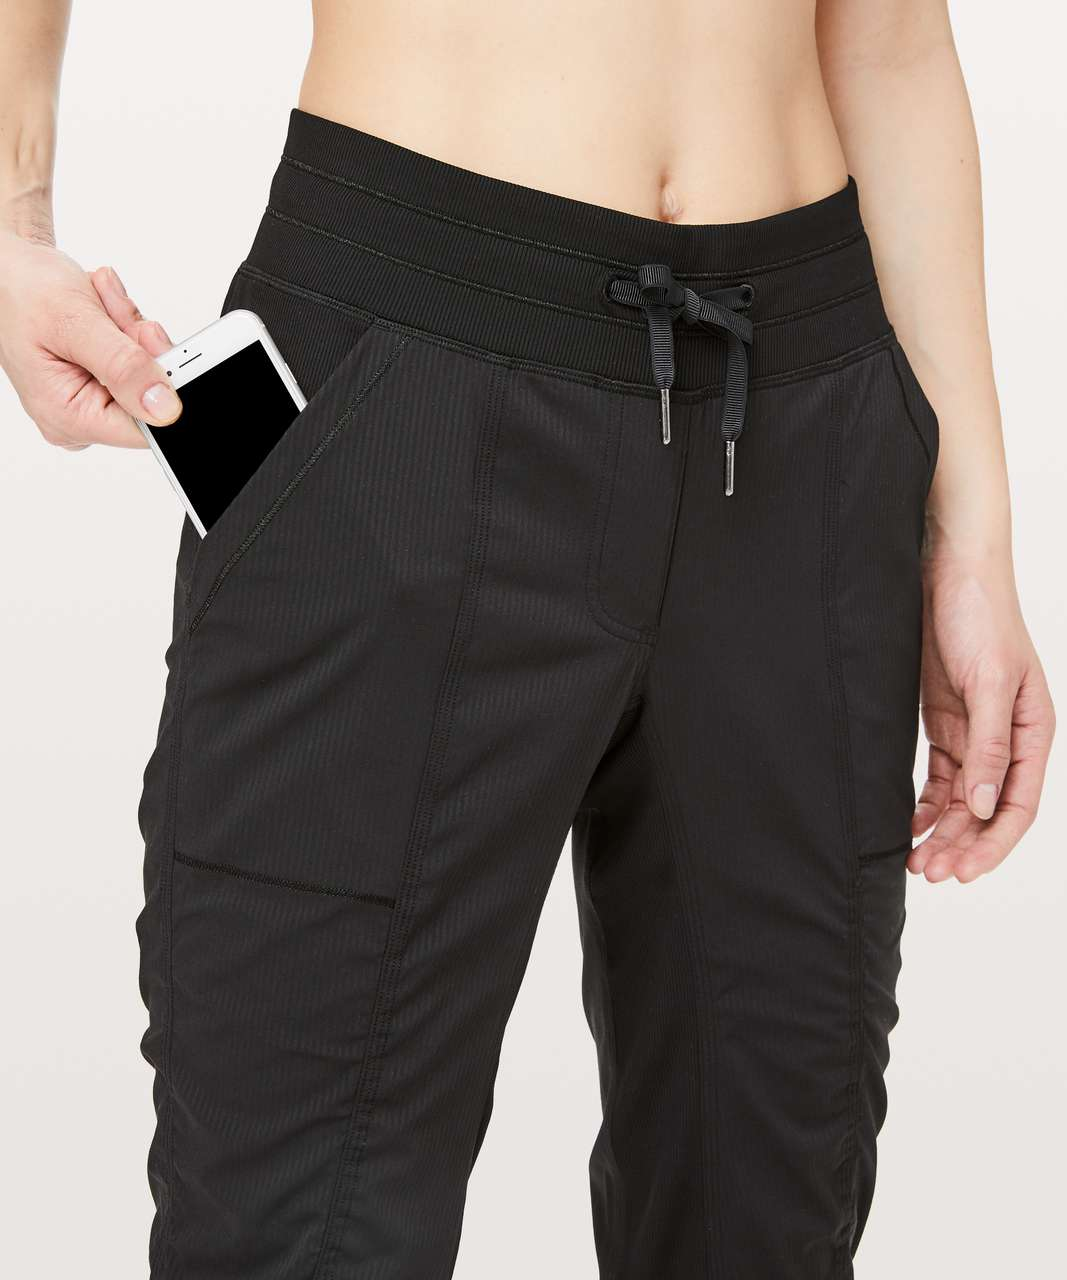 "Lululemon Street To Studio Pant II *Unlined 28"" - Black"